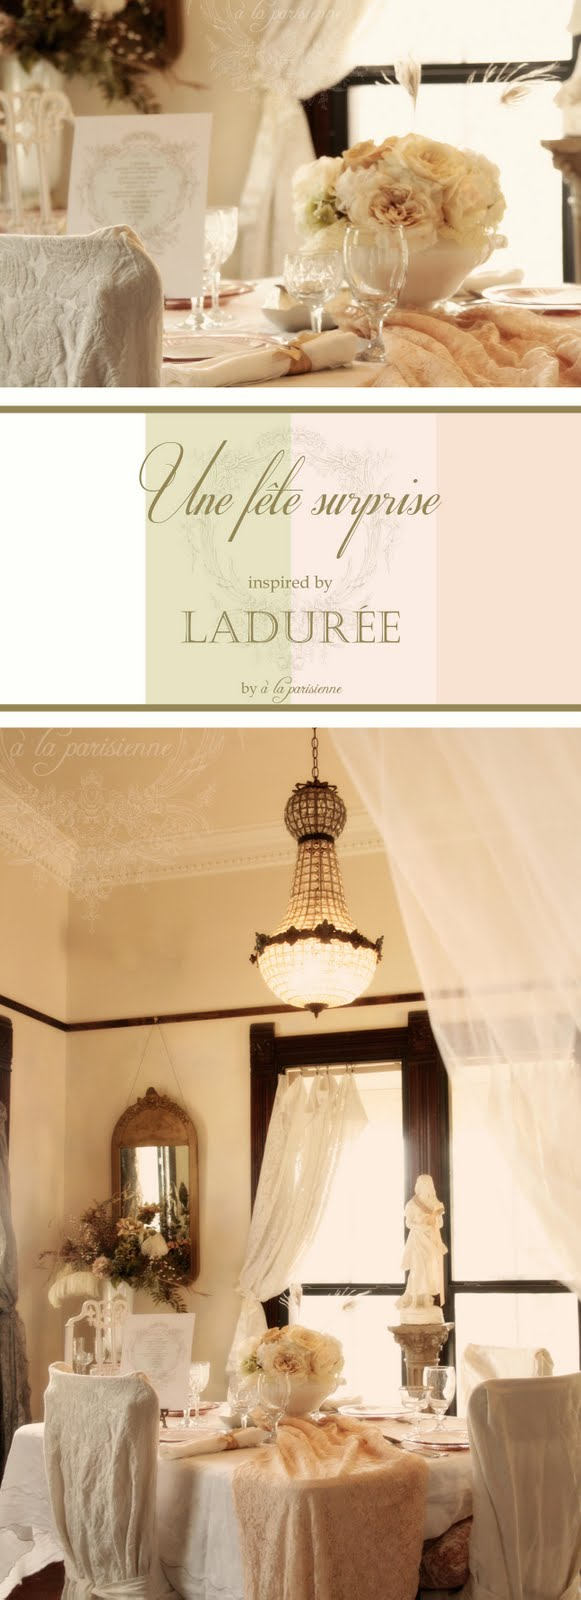 Ladurée-inspired fête surprise-The Décor